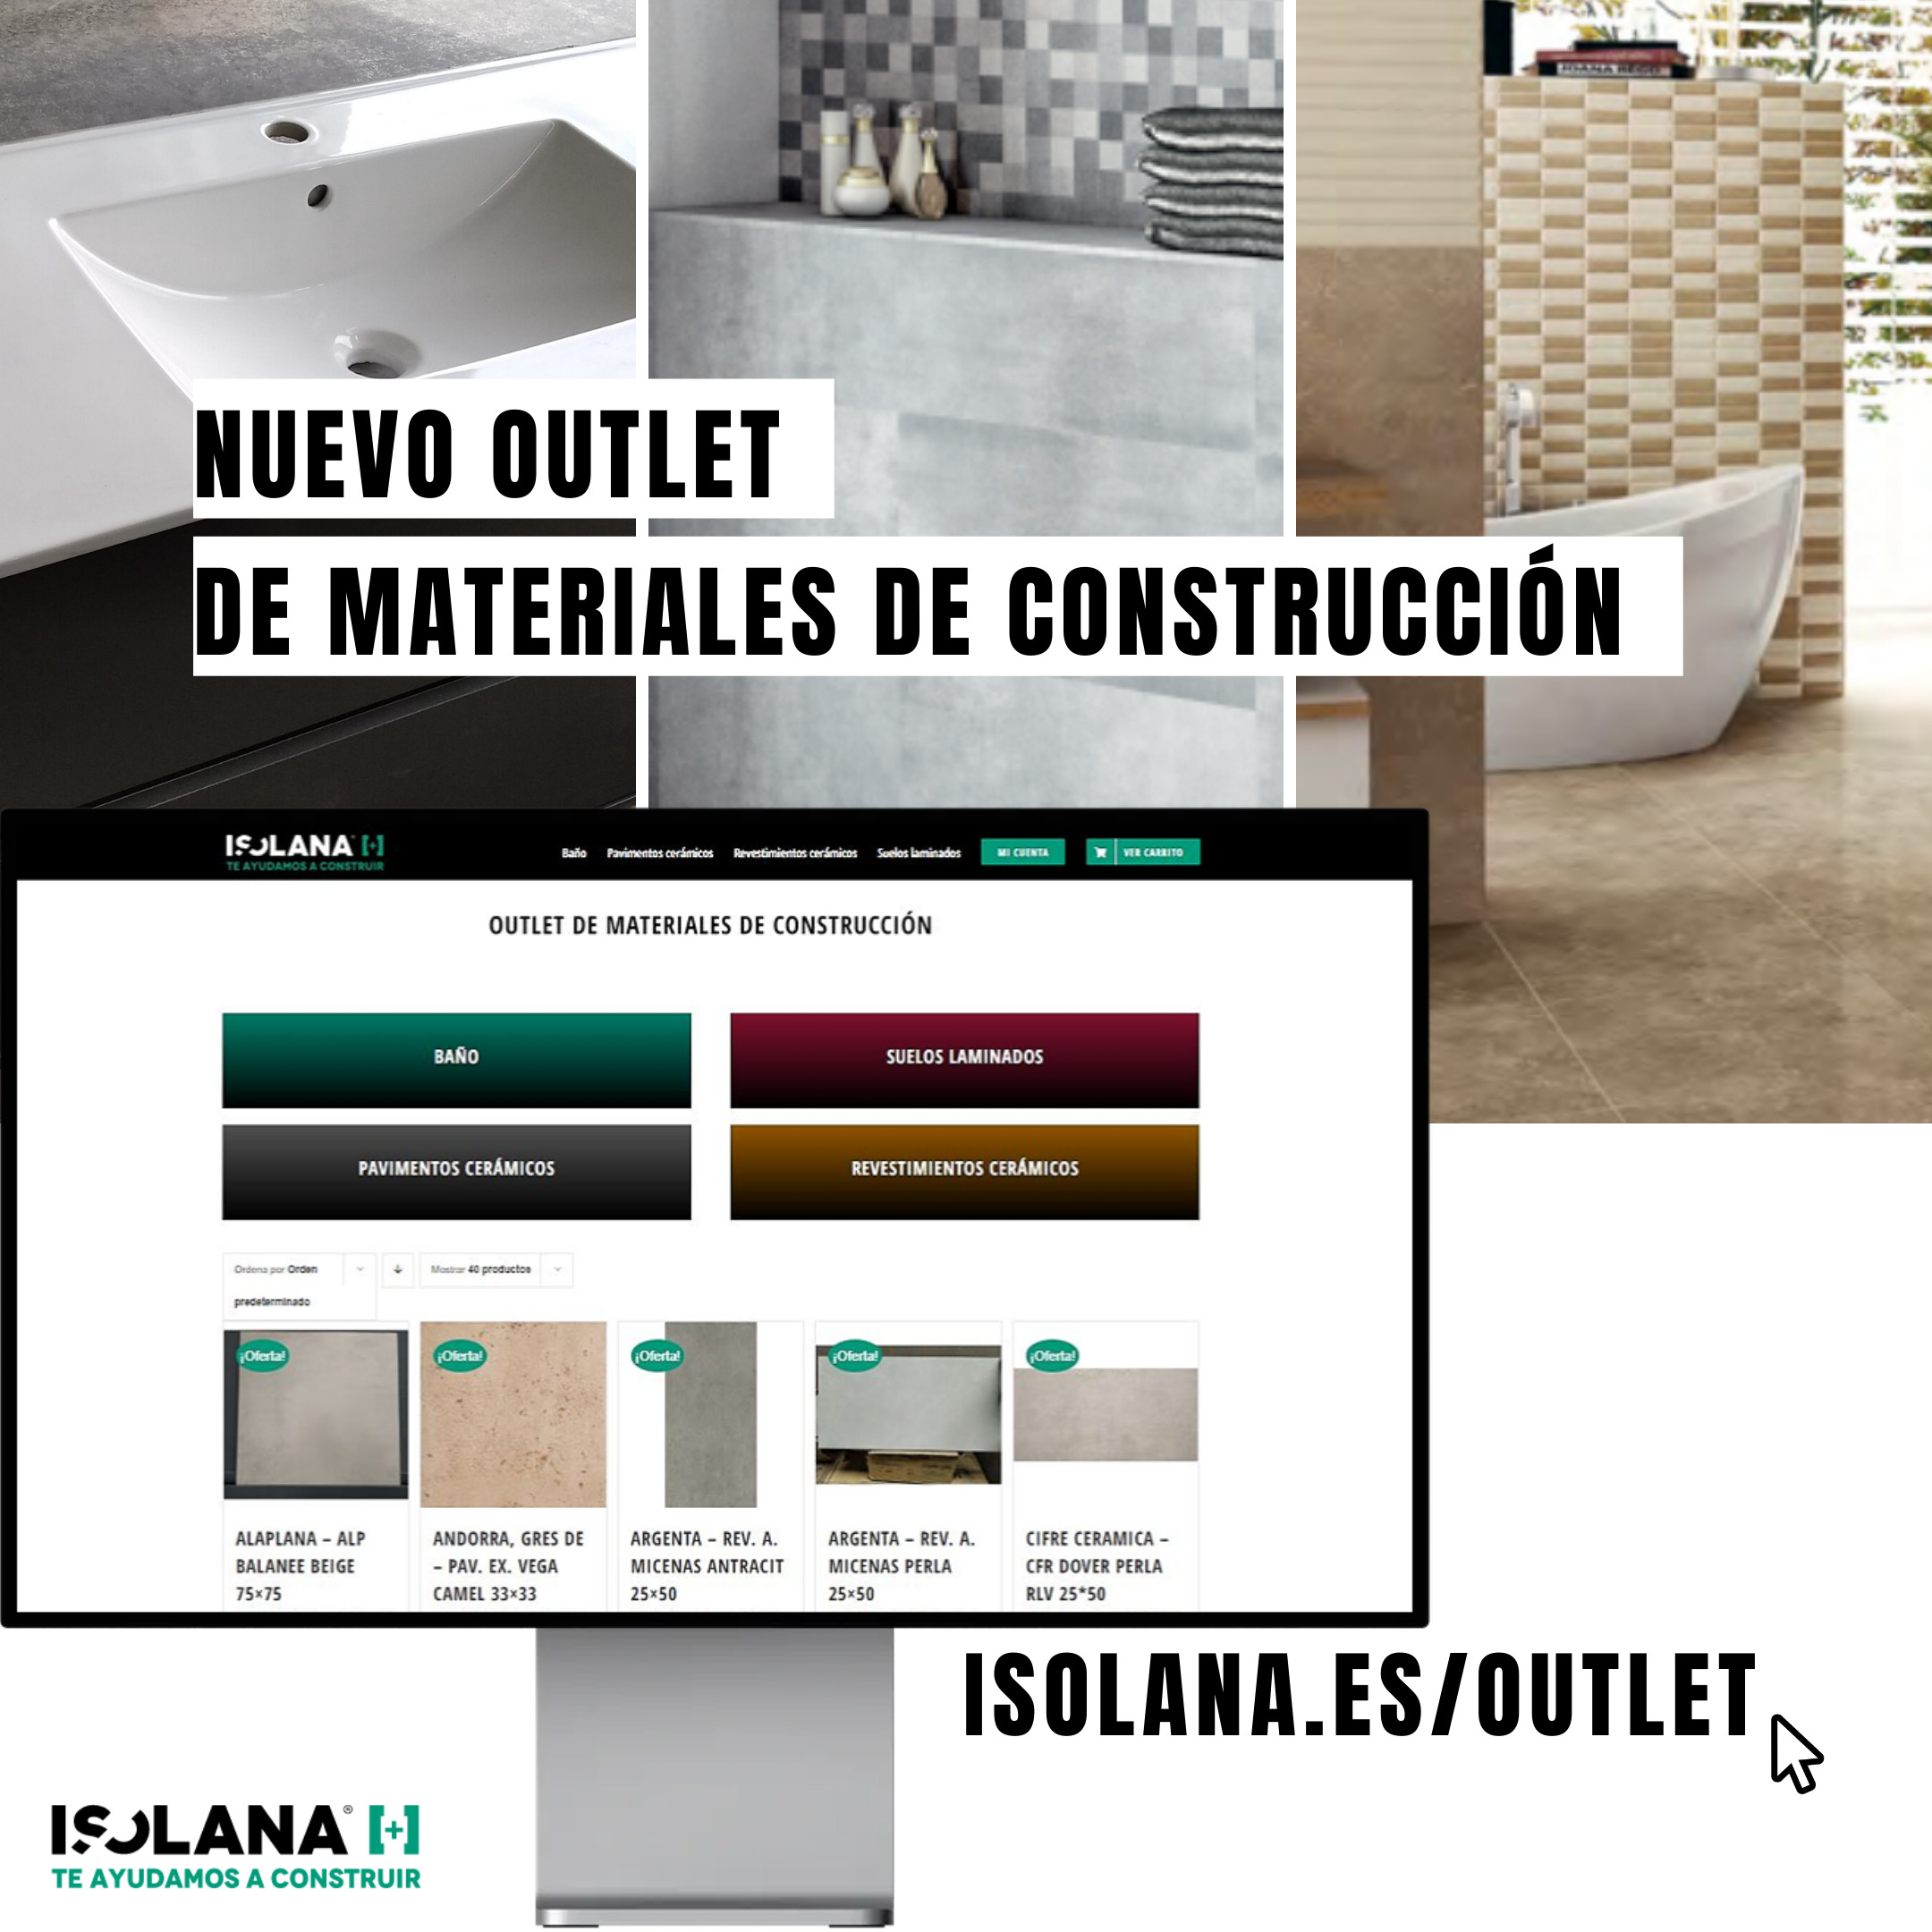 Outlet de Materiales de Construcción